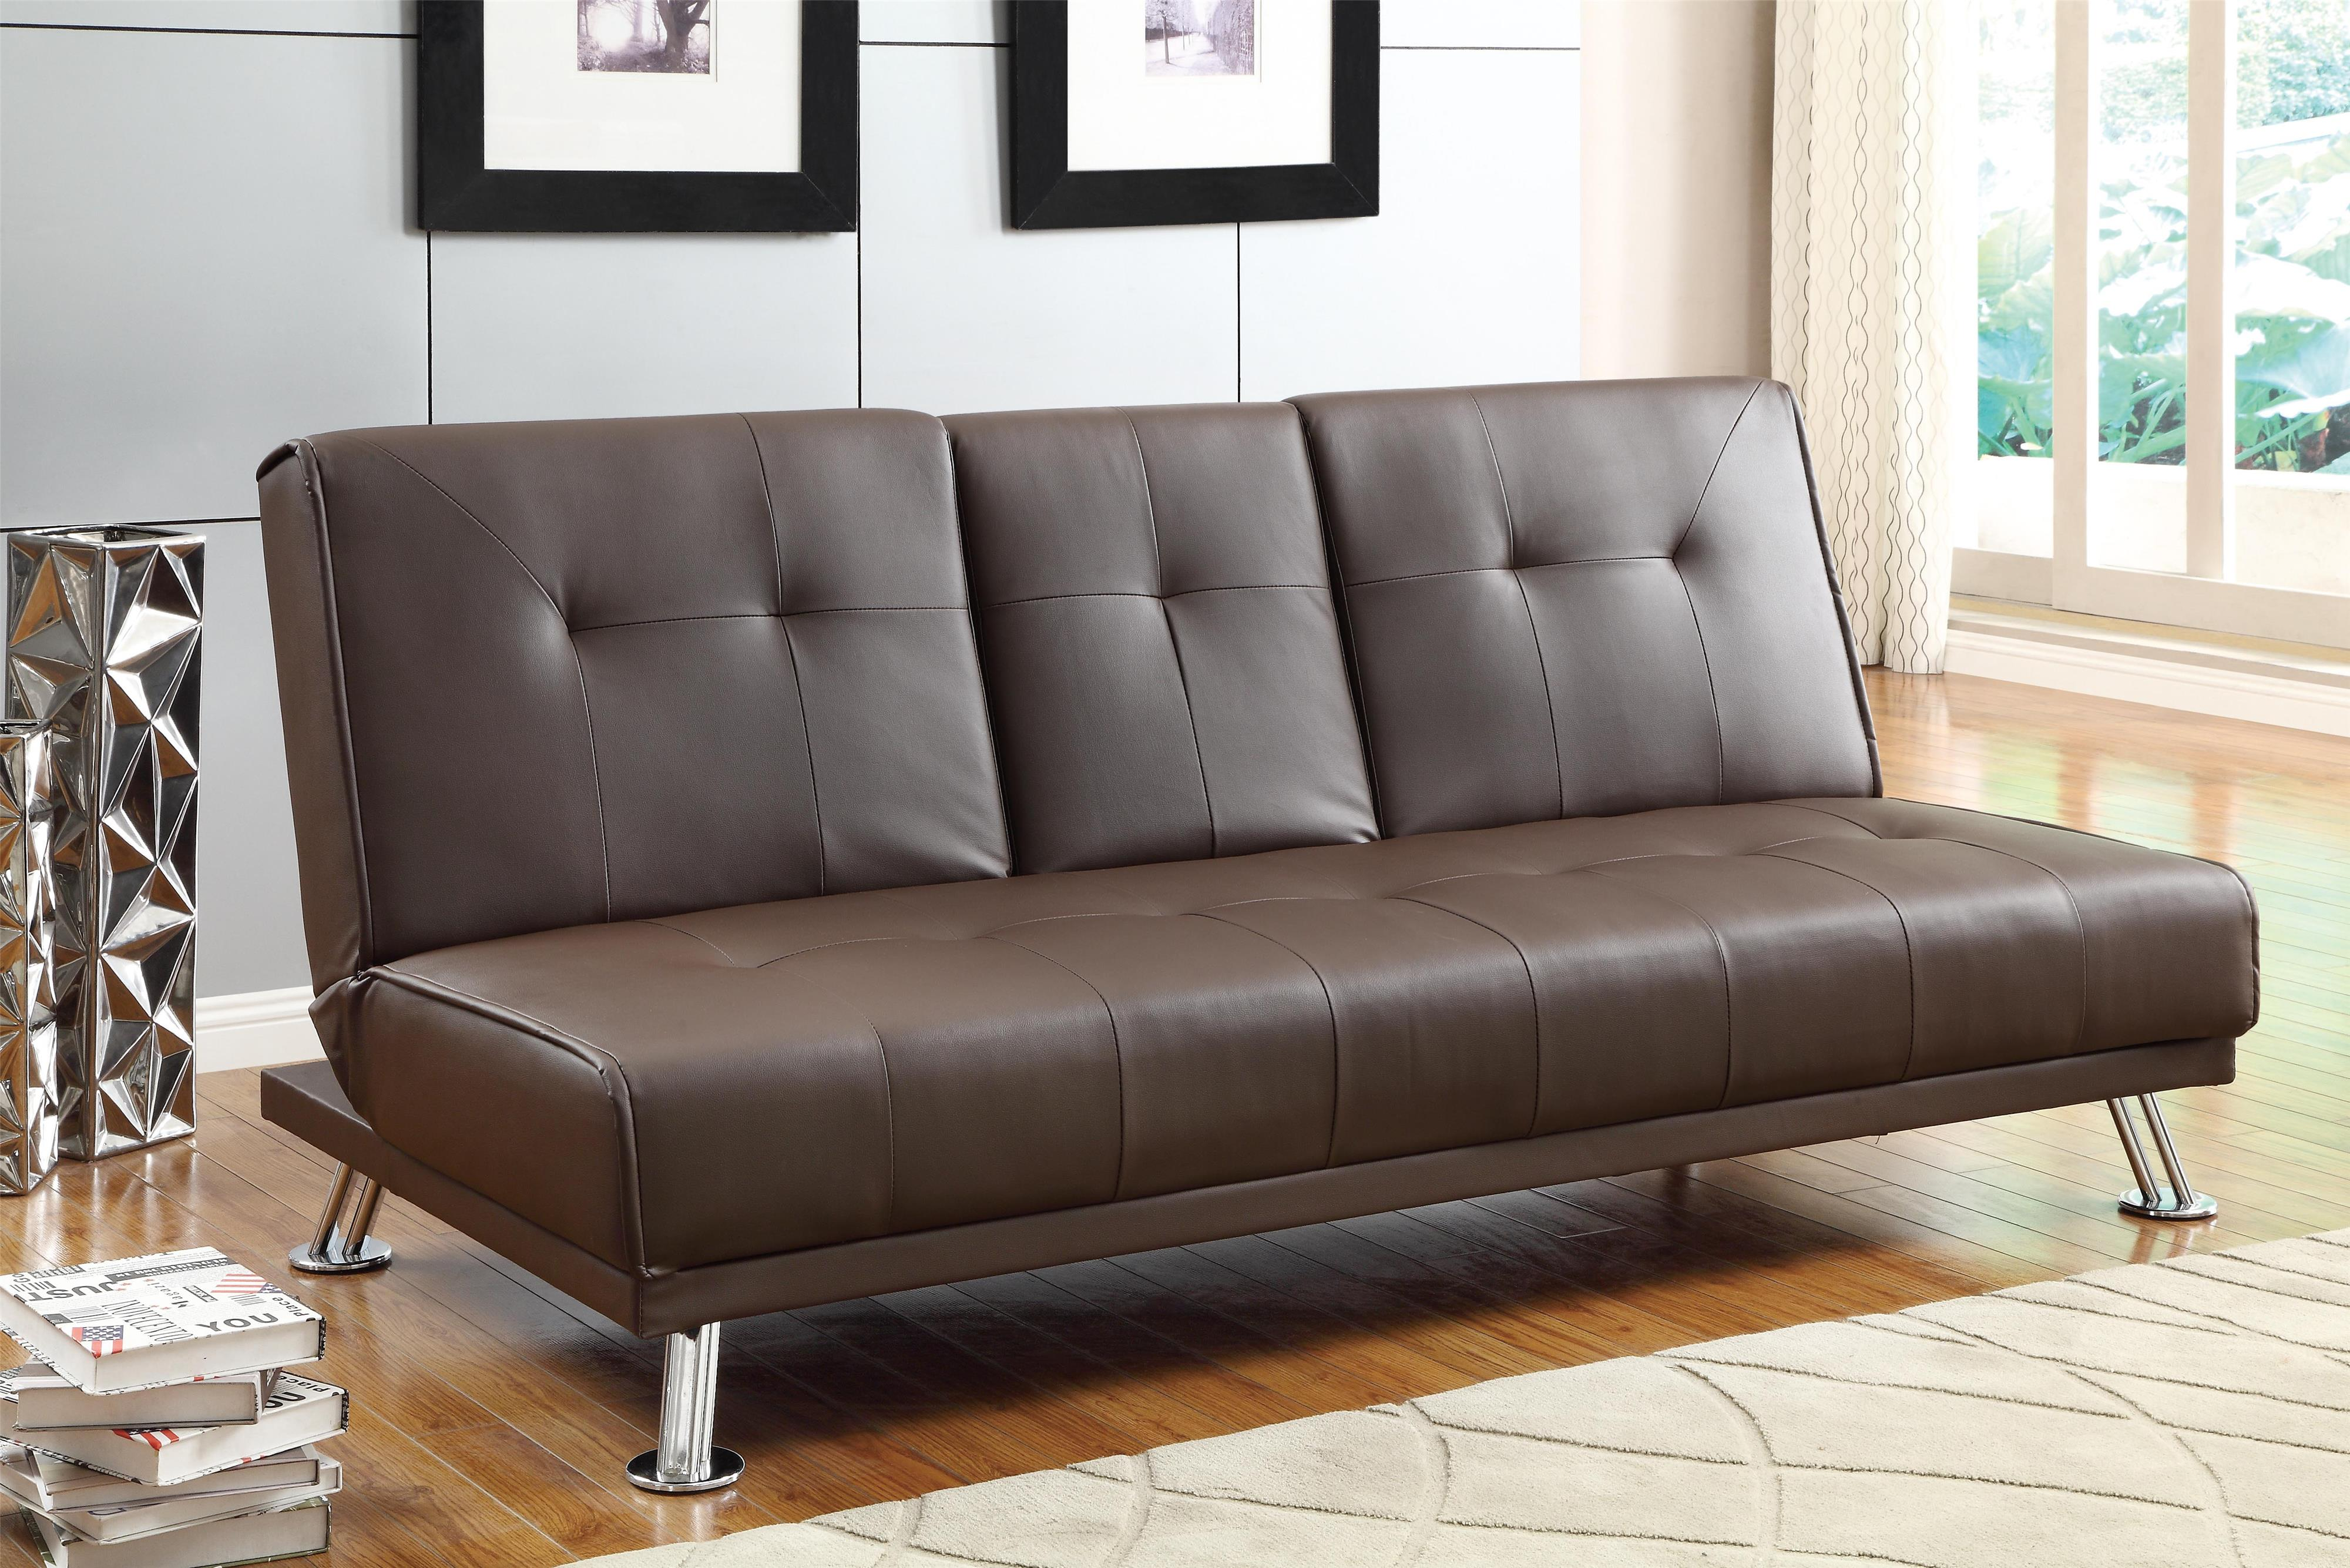 Homelegance 4825 Casual Click Clack Futon With Tufted Back Michael 39 S Furniture Warehouse Futon